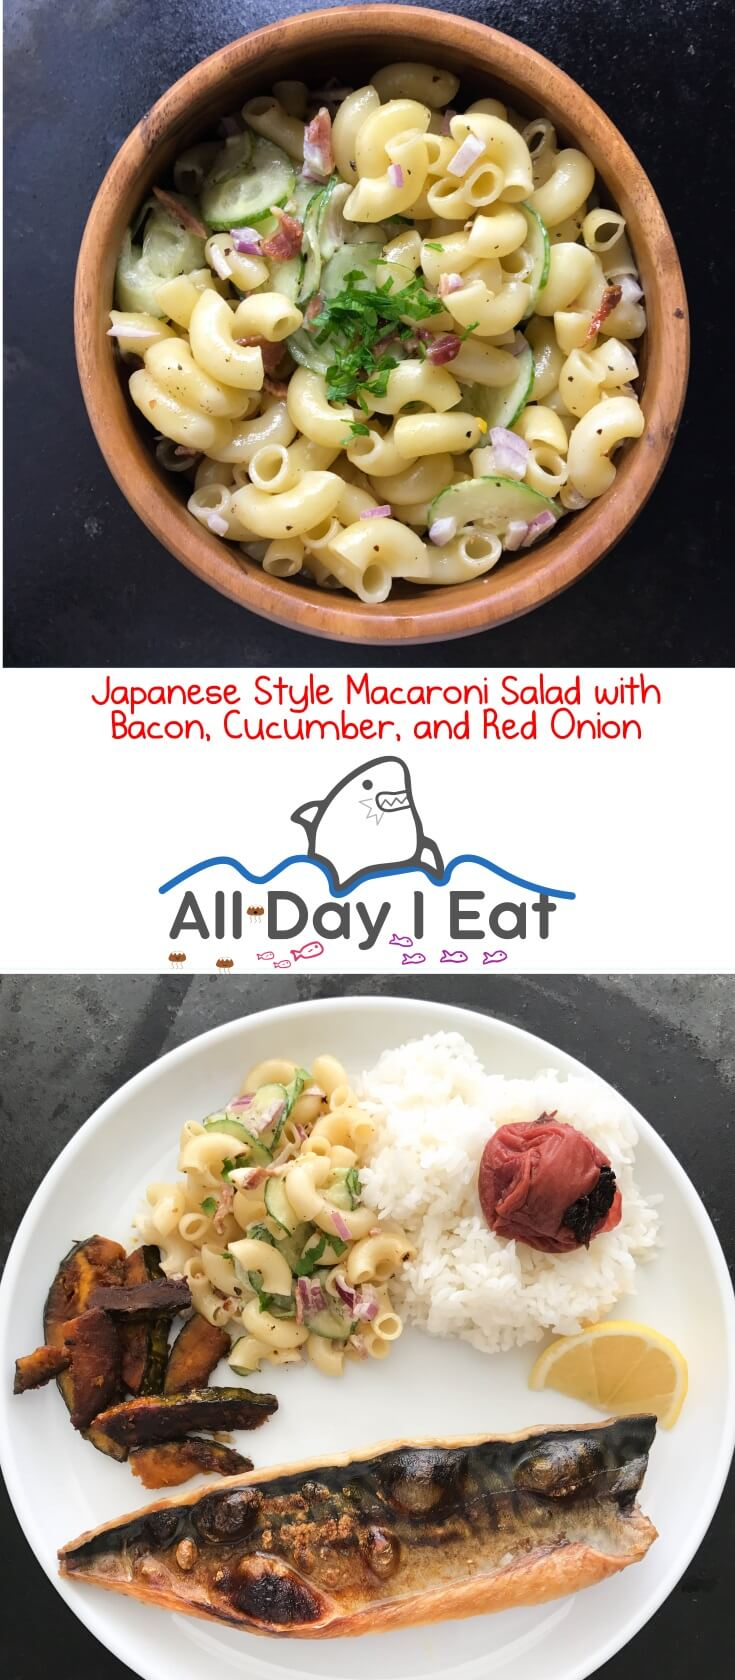 Japanese Style Macaroni Salad with Bacon, Cucumber, and Red Onion. A light tasting side that can accompany almost any entree! | www.alldayieat.com